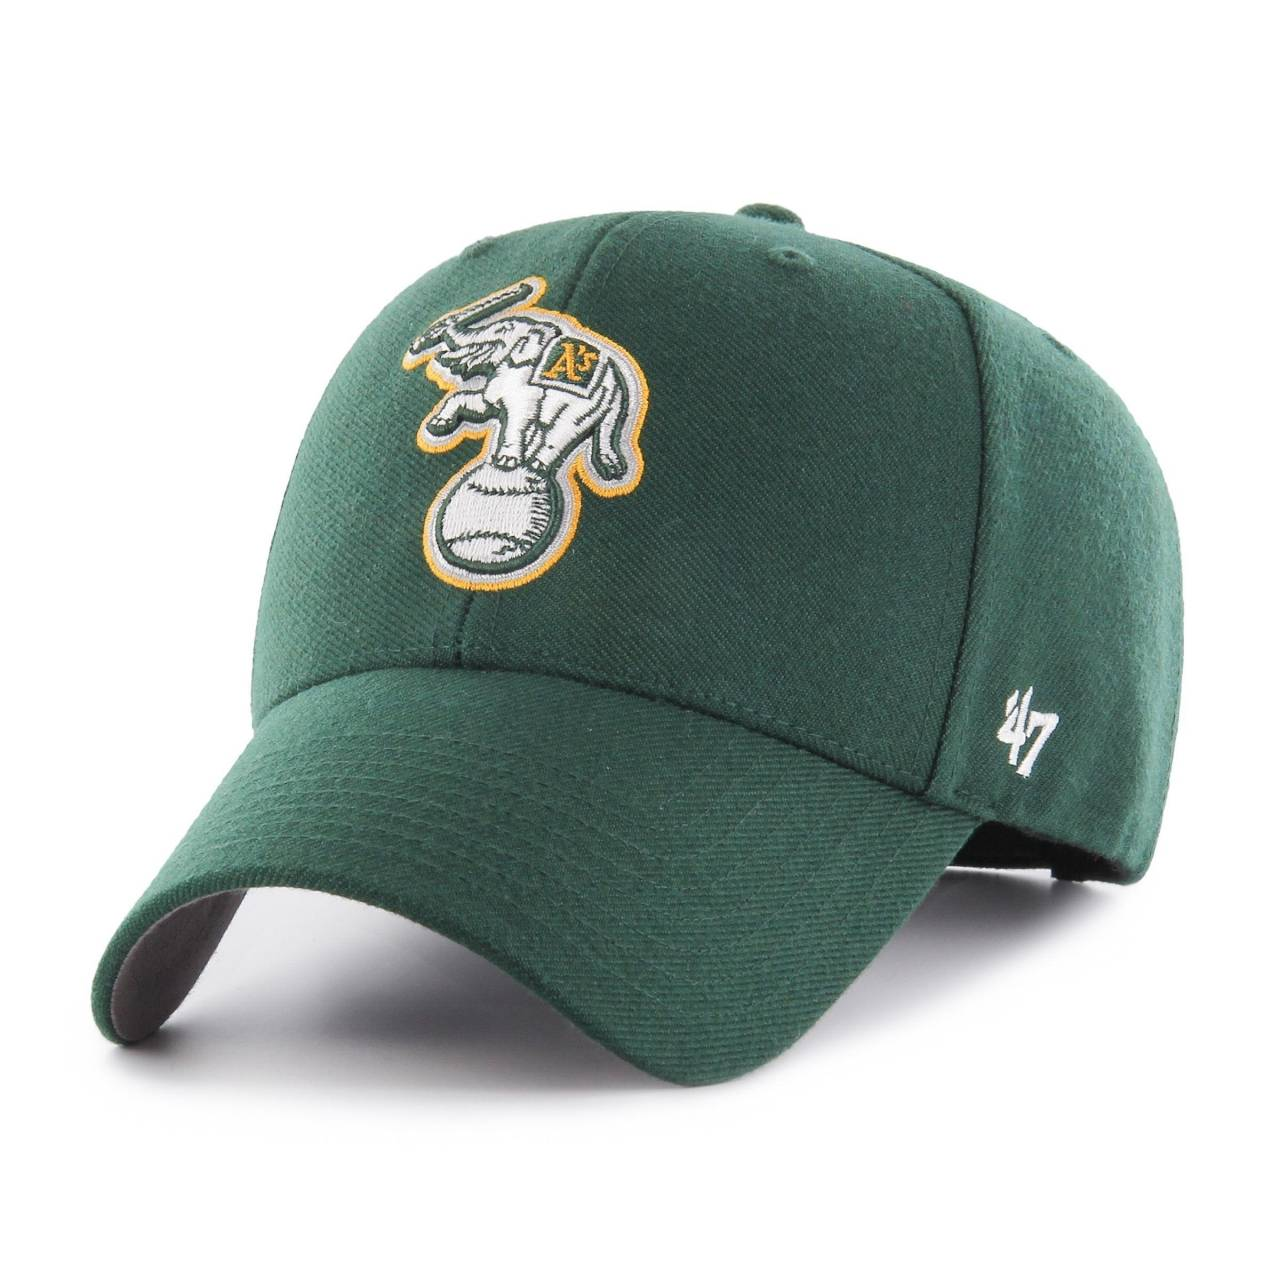 47-mvp-mlb-cooperstown-oakland-athletics-elephant-green-curved-cap